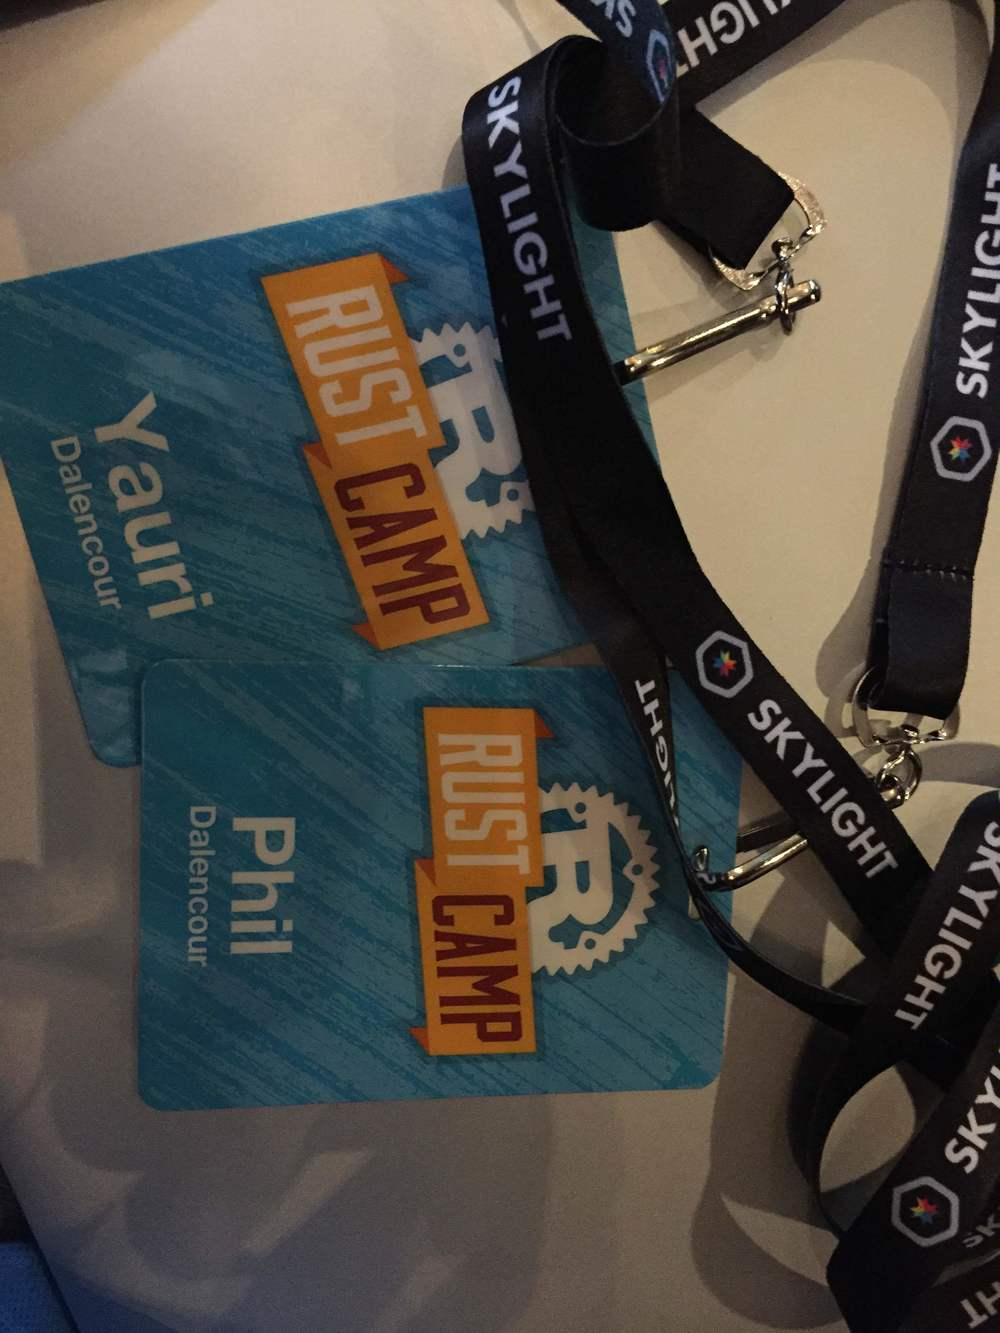 My husbands's and my badges we received @Rust Camp, an open source programming conference we attended  UC Berkeley